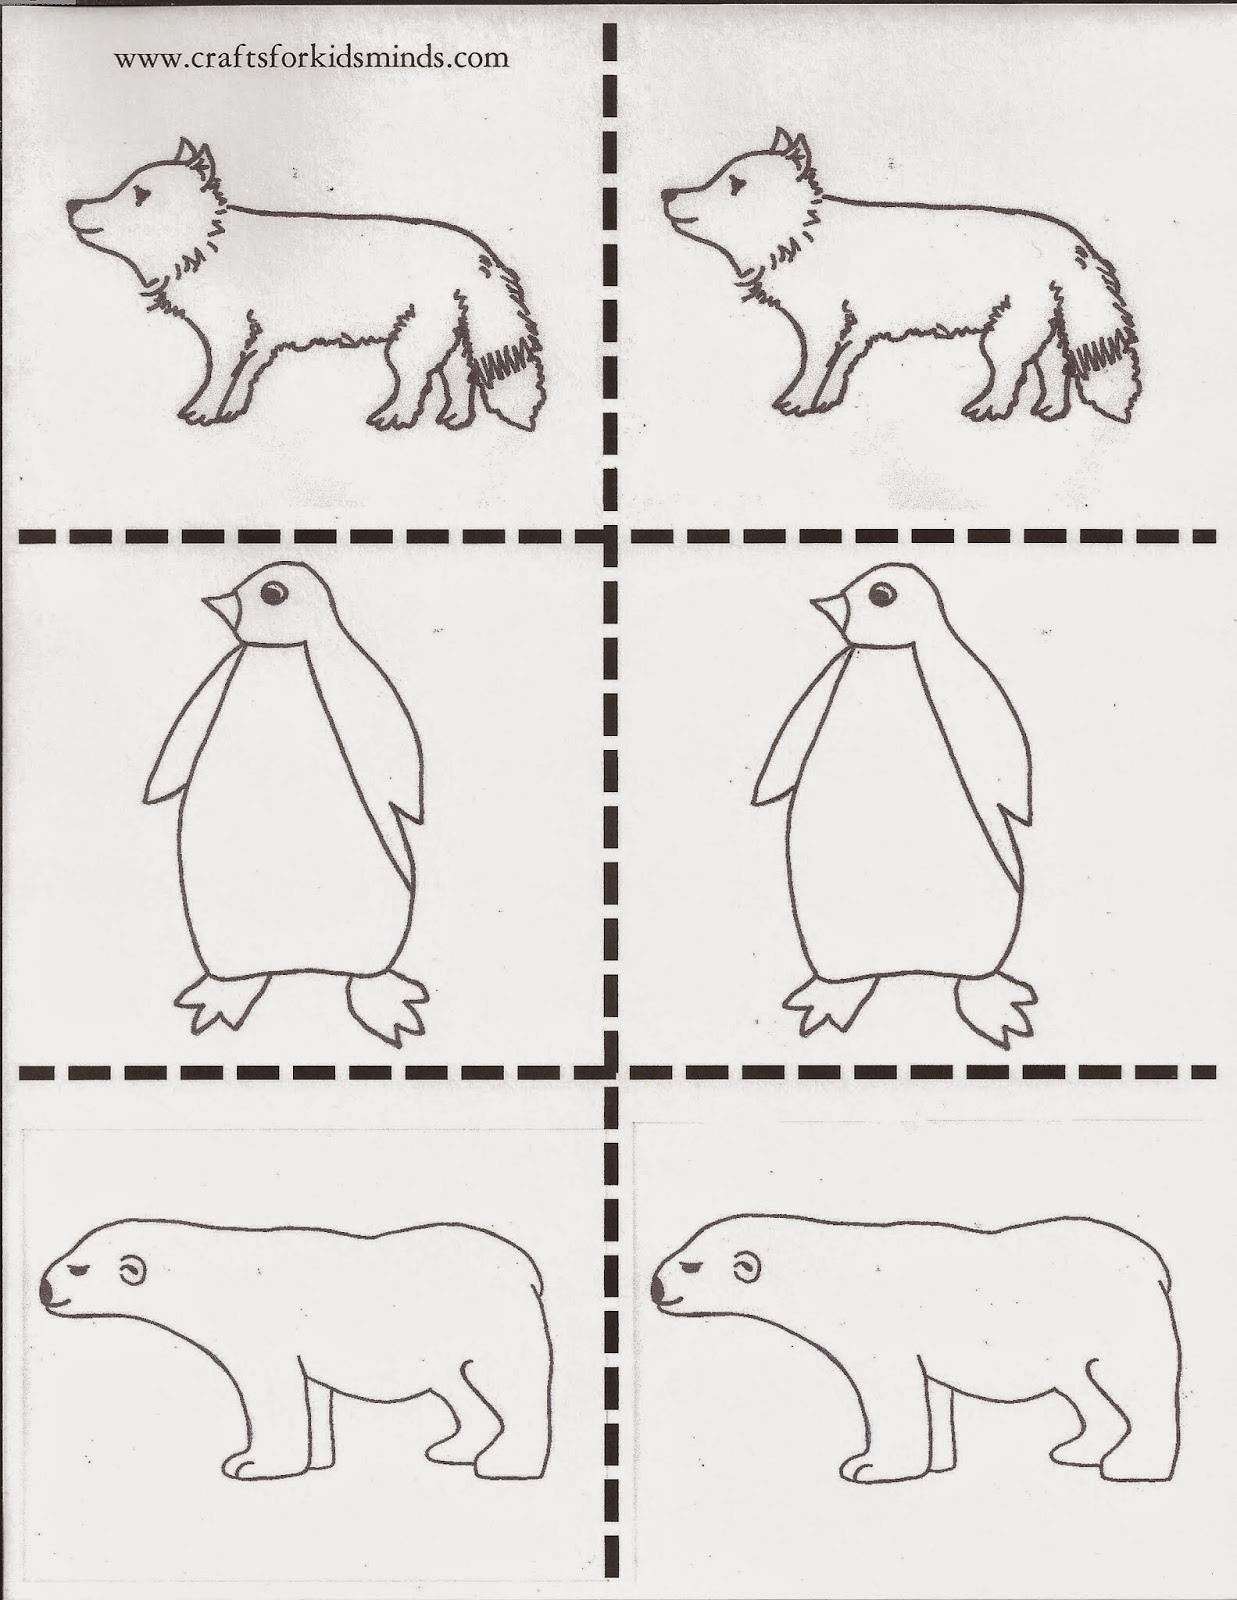 Crafts For Kids Minds Arctic Animals Memory Game Printable